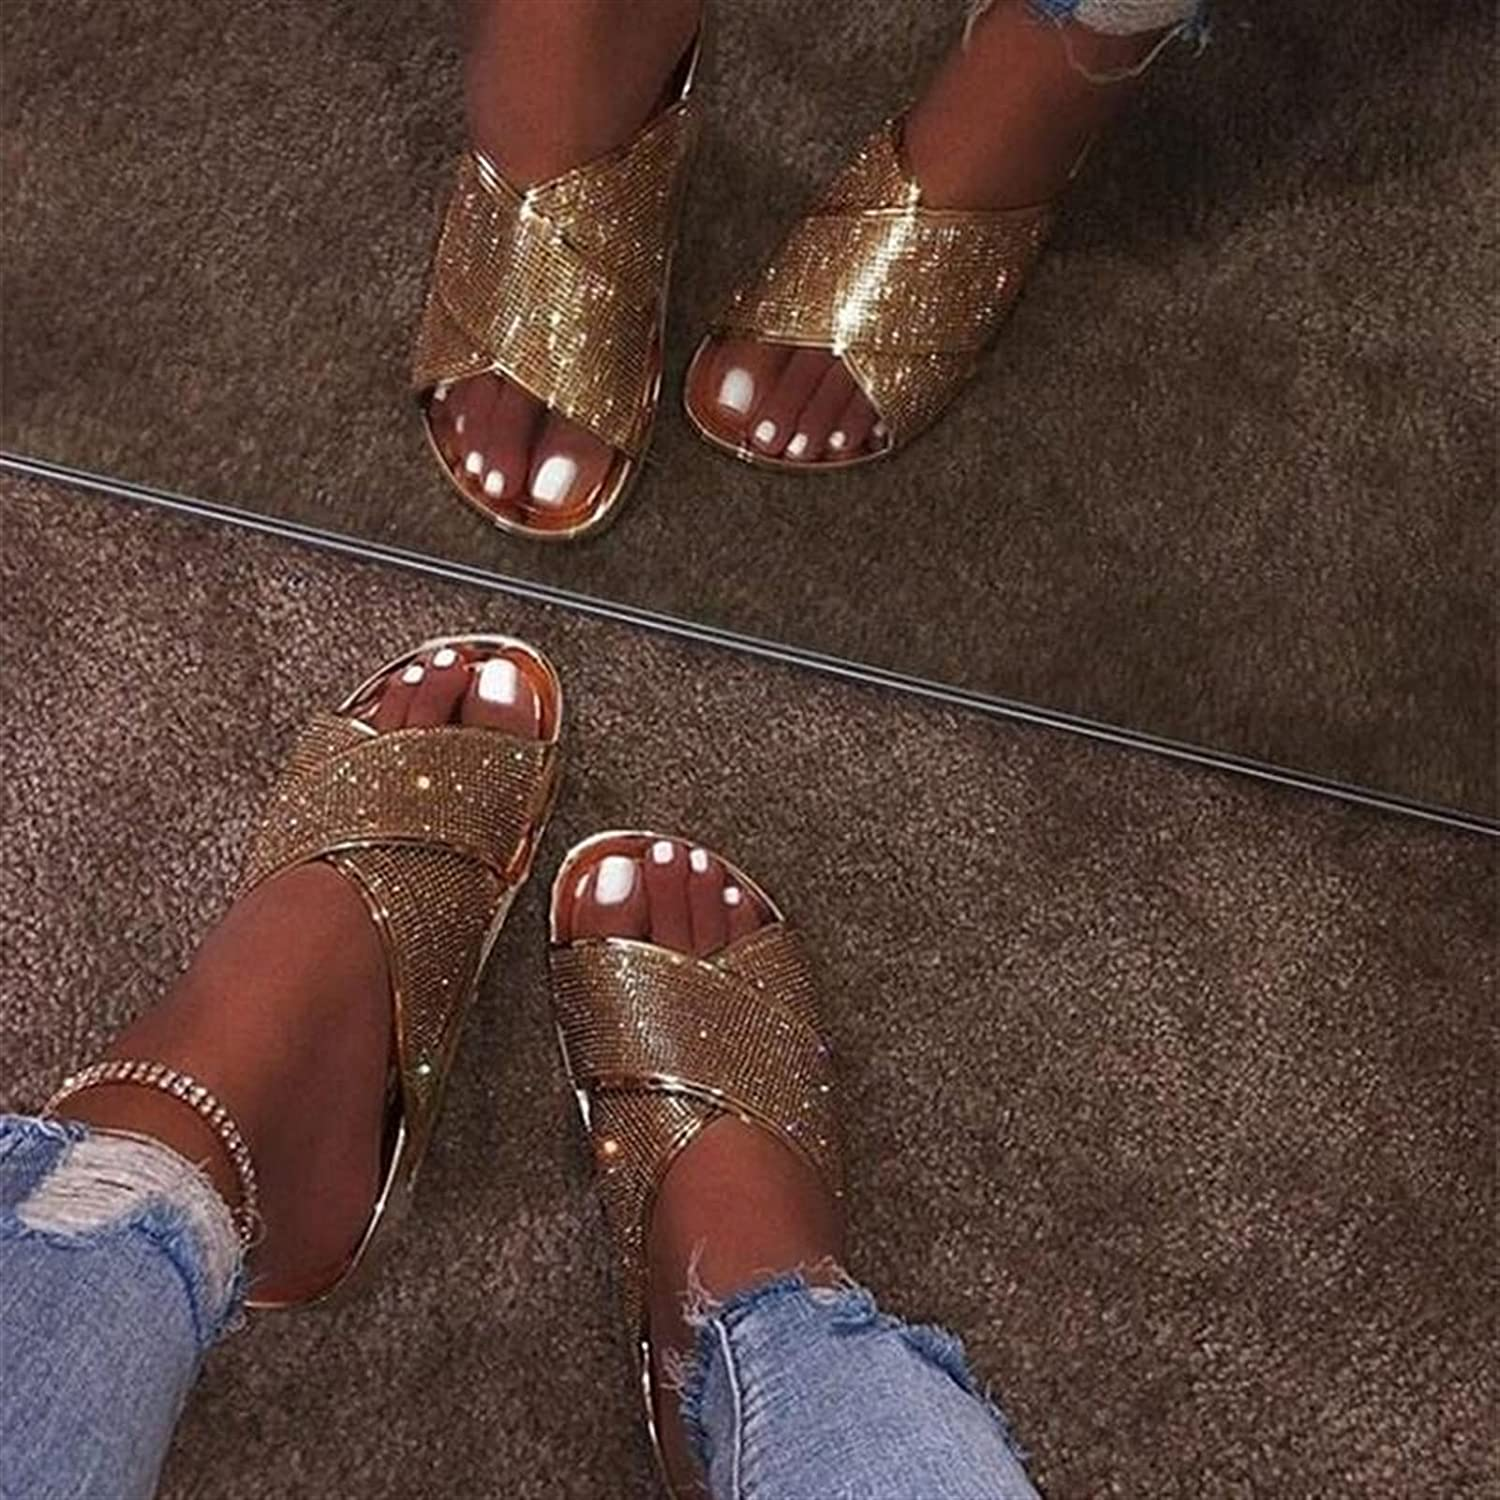 Ladies Slippers Women's Shoes Large Flat Size Price Explosion La Houston Mall Popular overseas